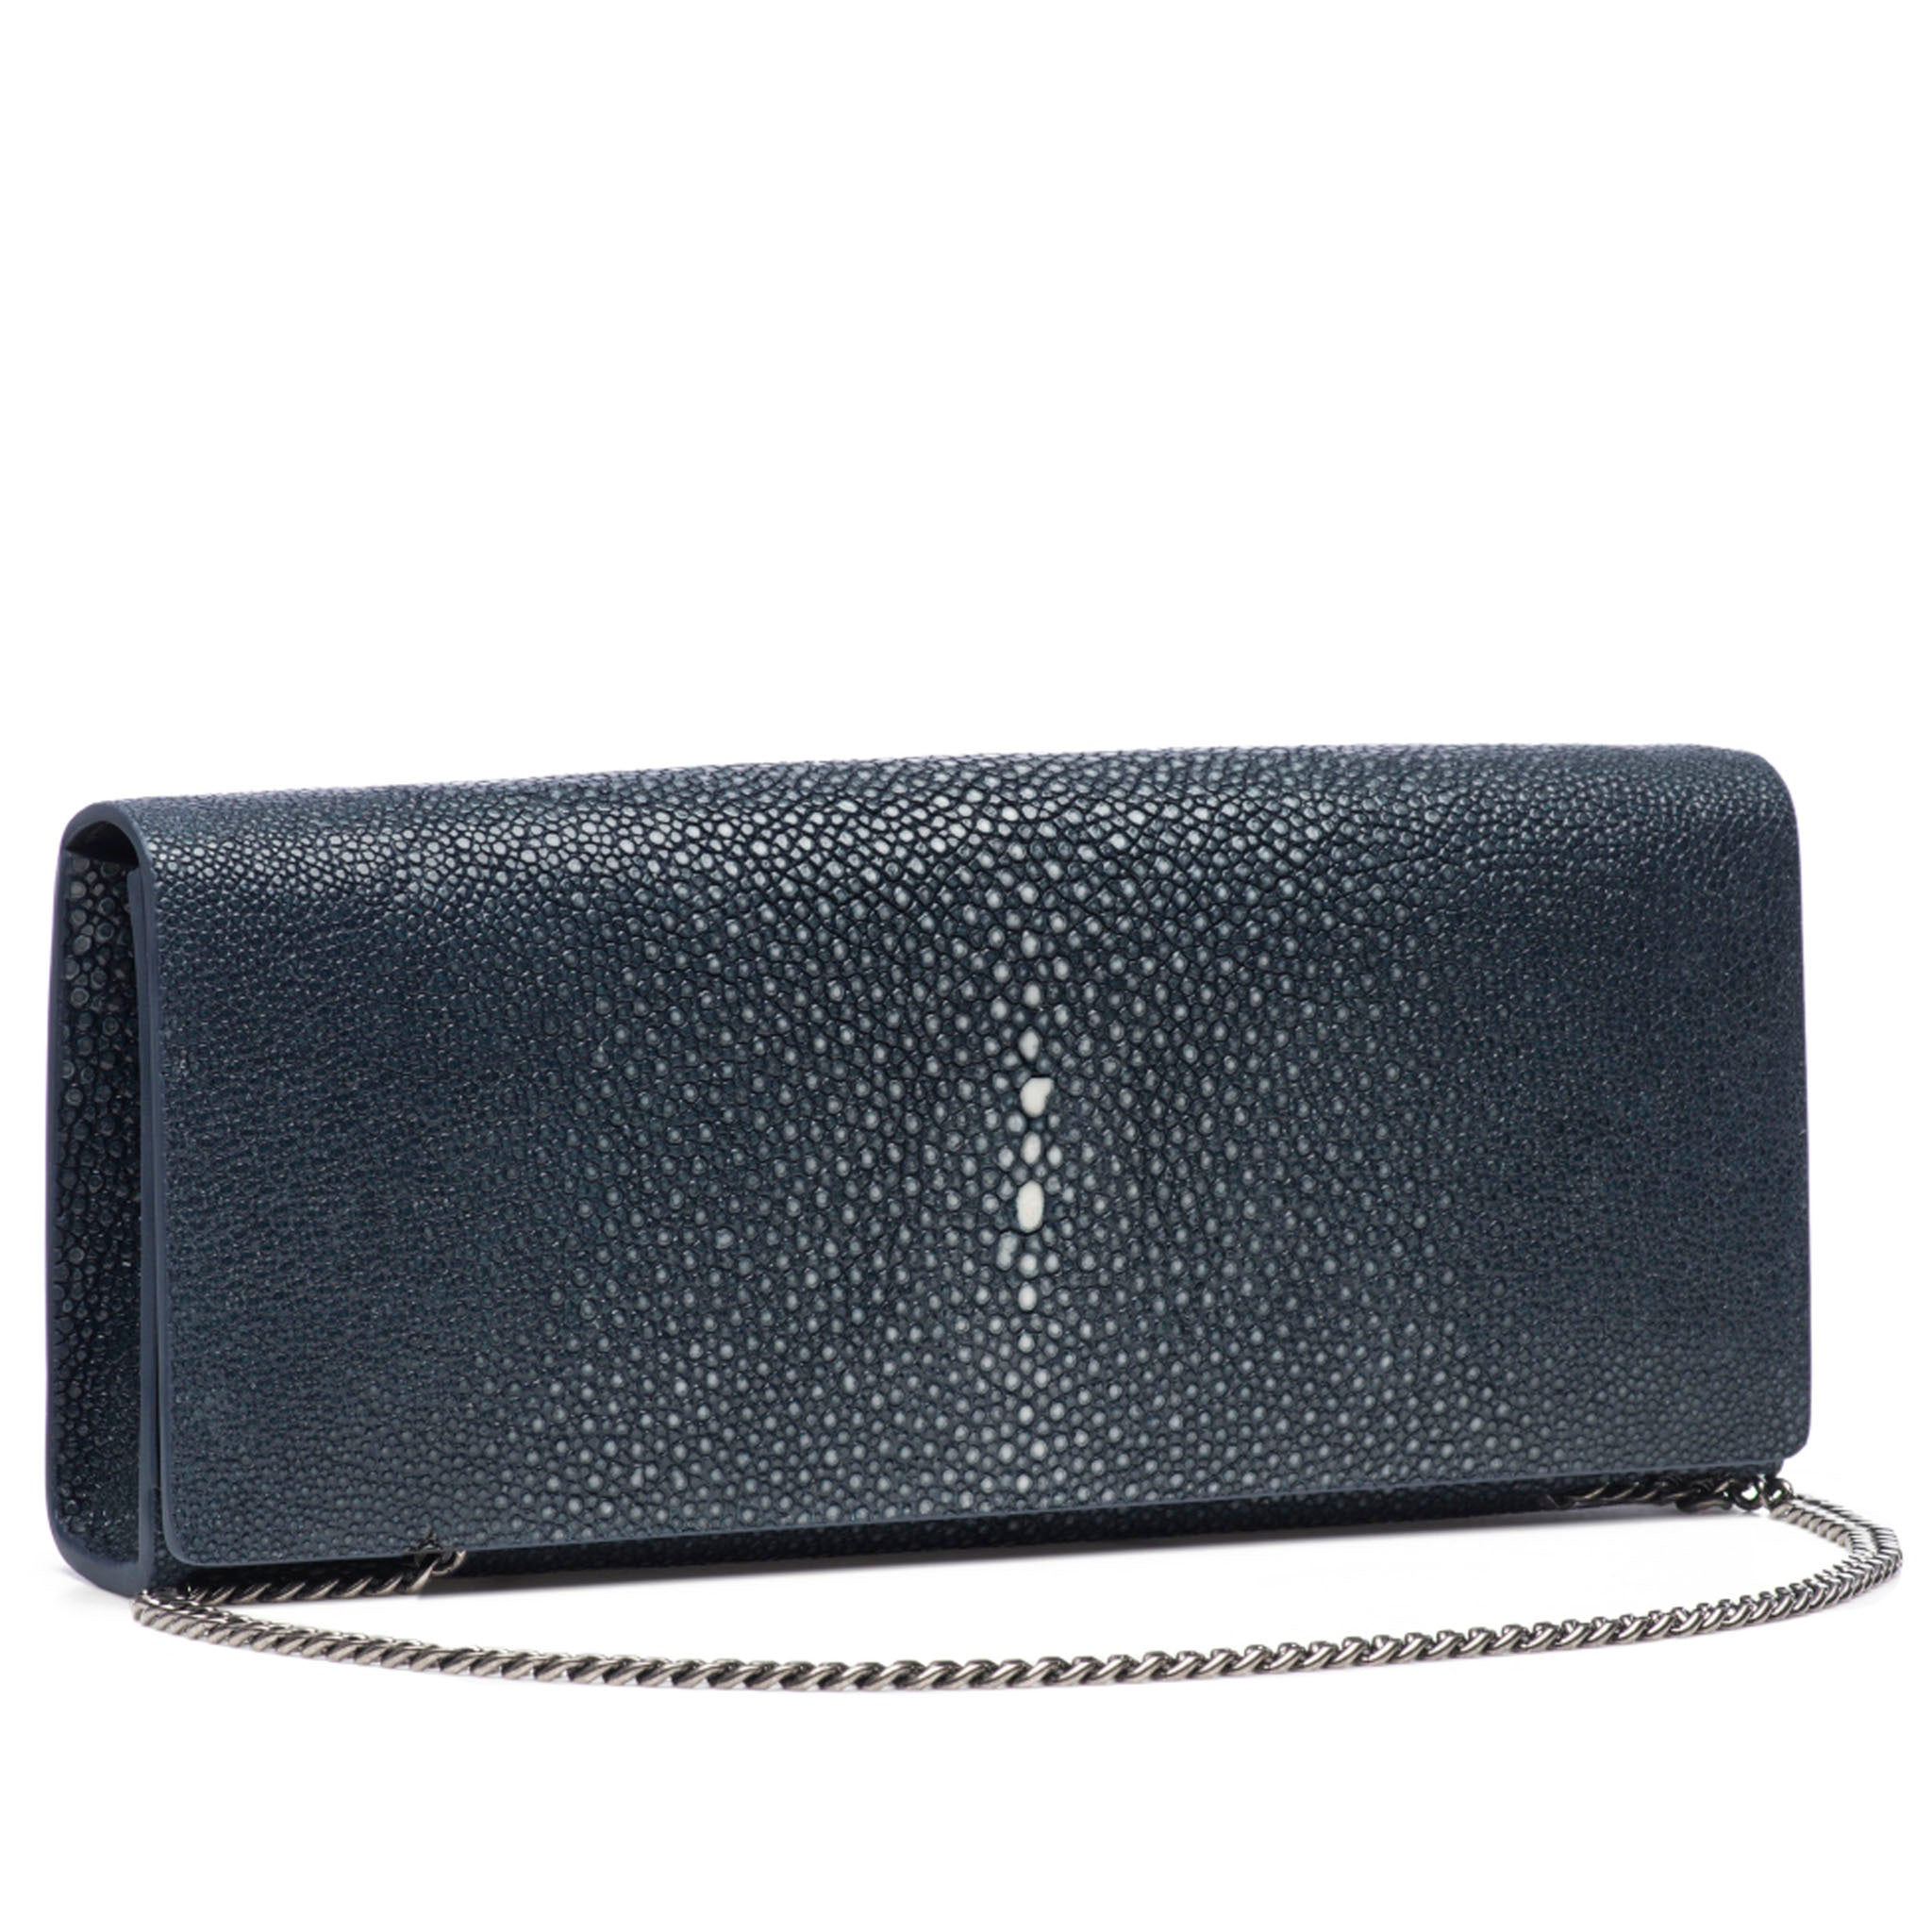 Navy Shagreen Clutch Bag Front View With Chain Cleo - Vivo Direct